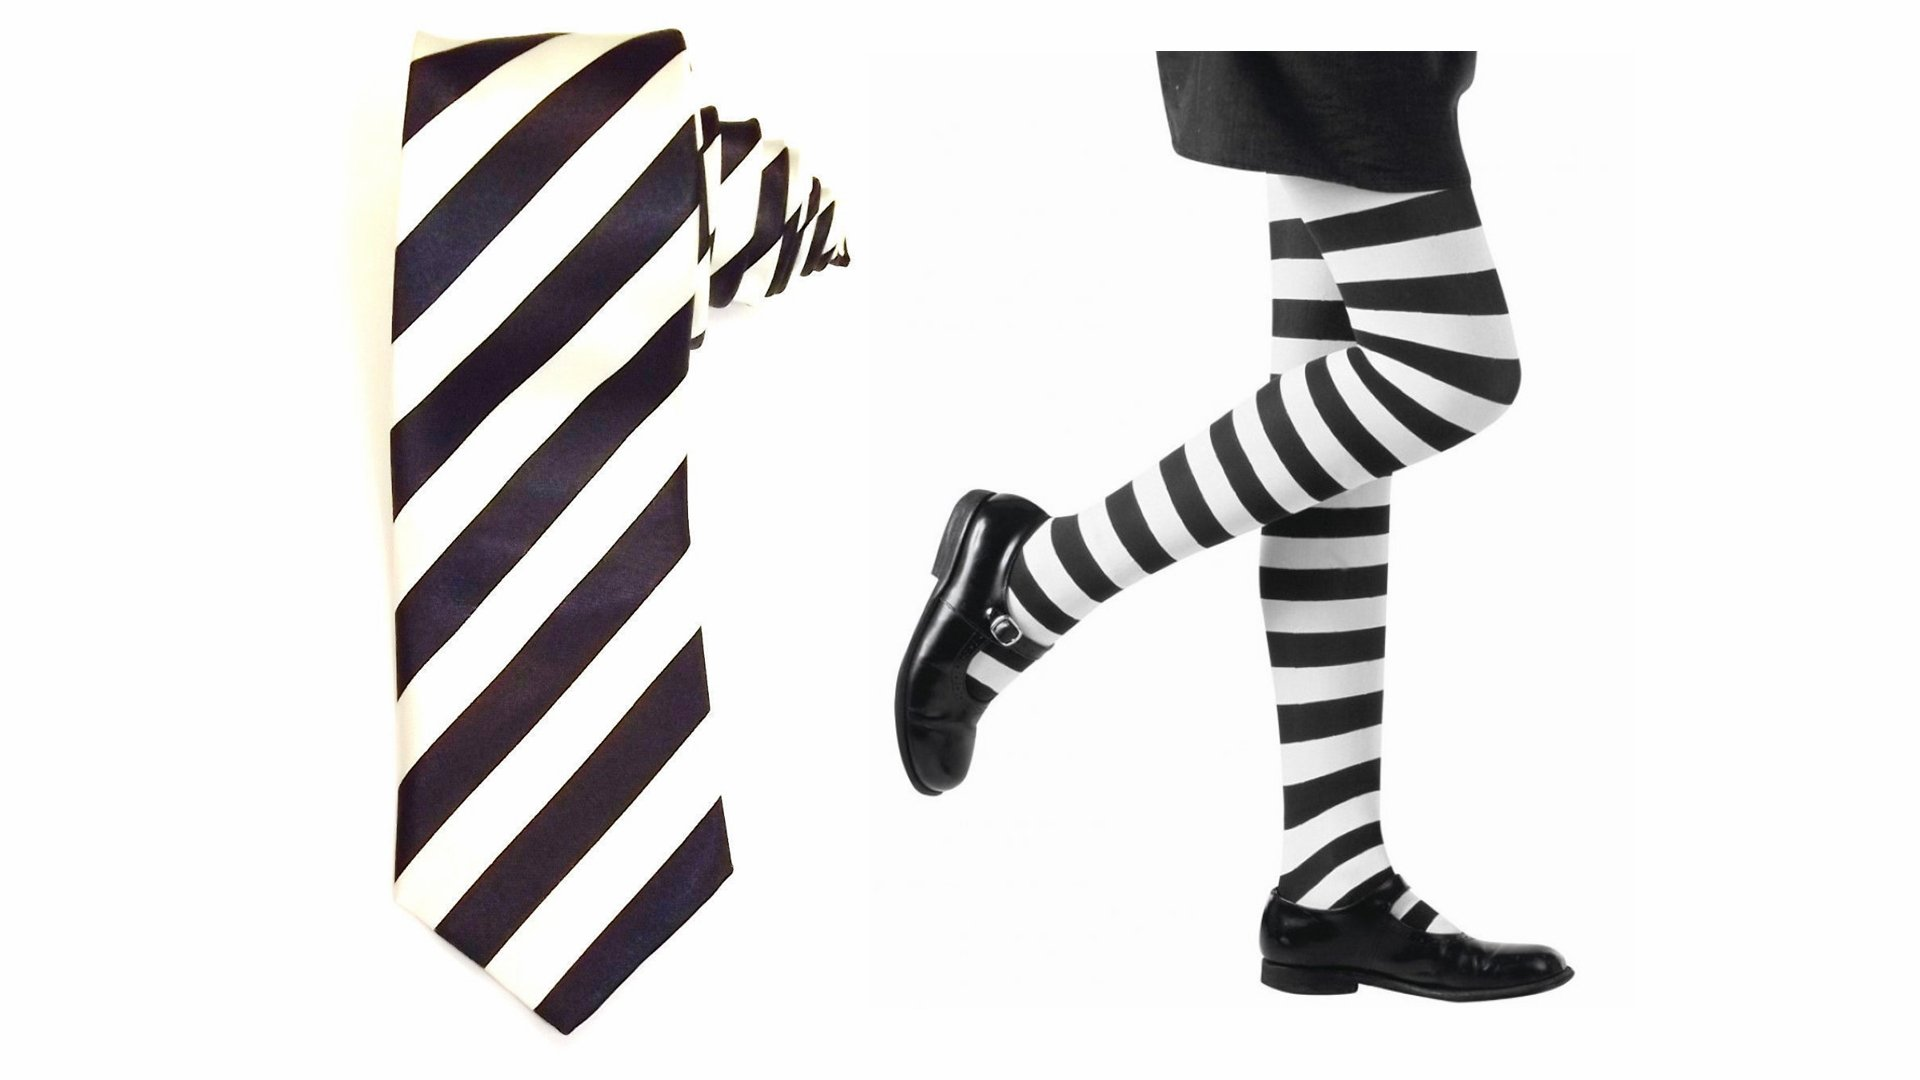 ILFD GIRLS CHILDS WITCH MILDRED HUBBLE TIE STRIVE STICKER BADGE TIGHTS AGE 4-11